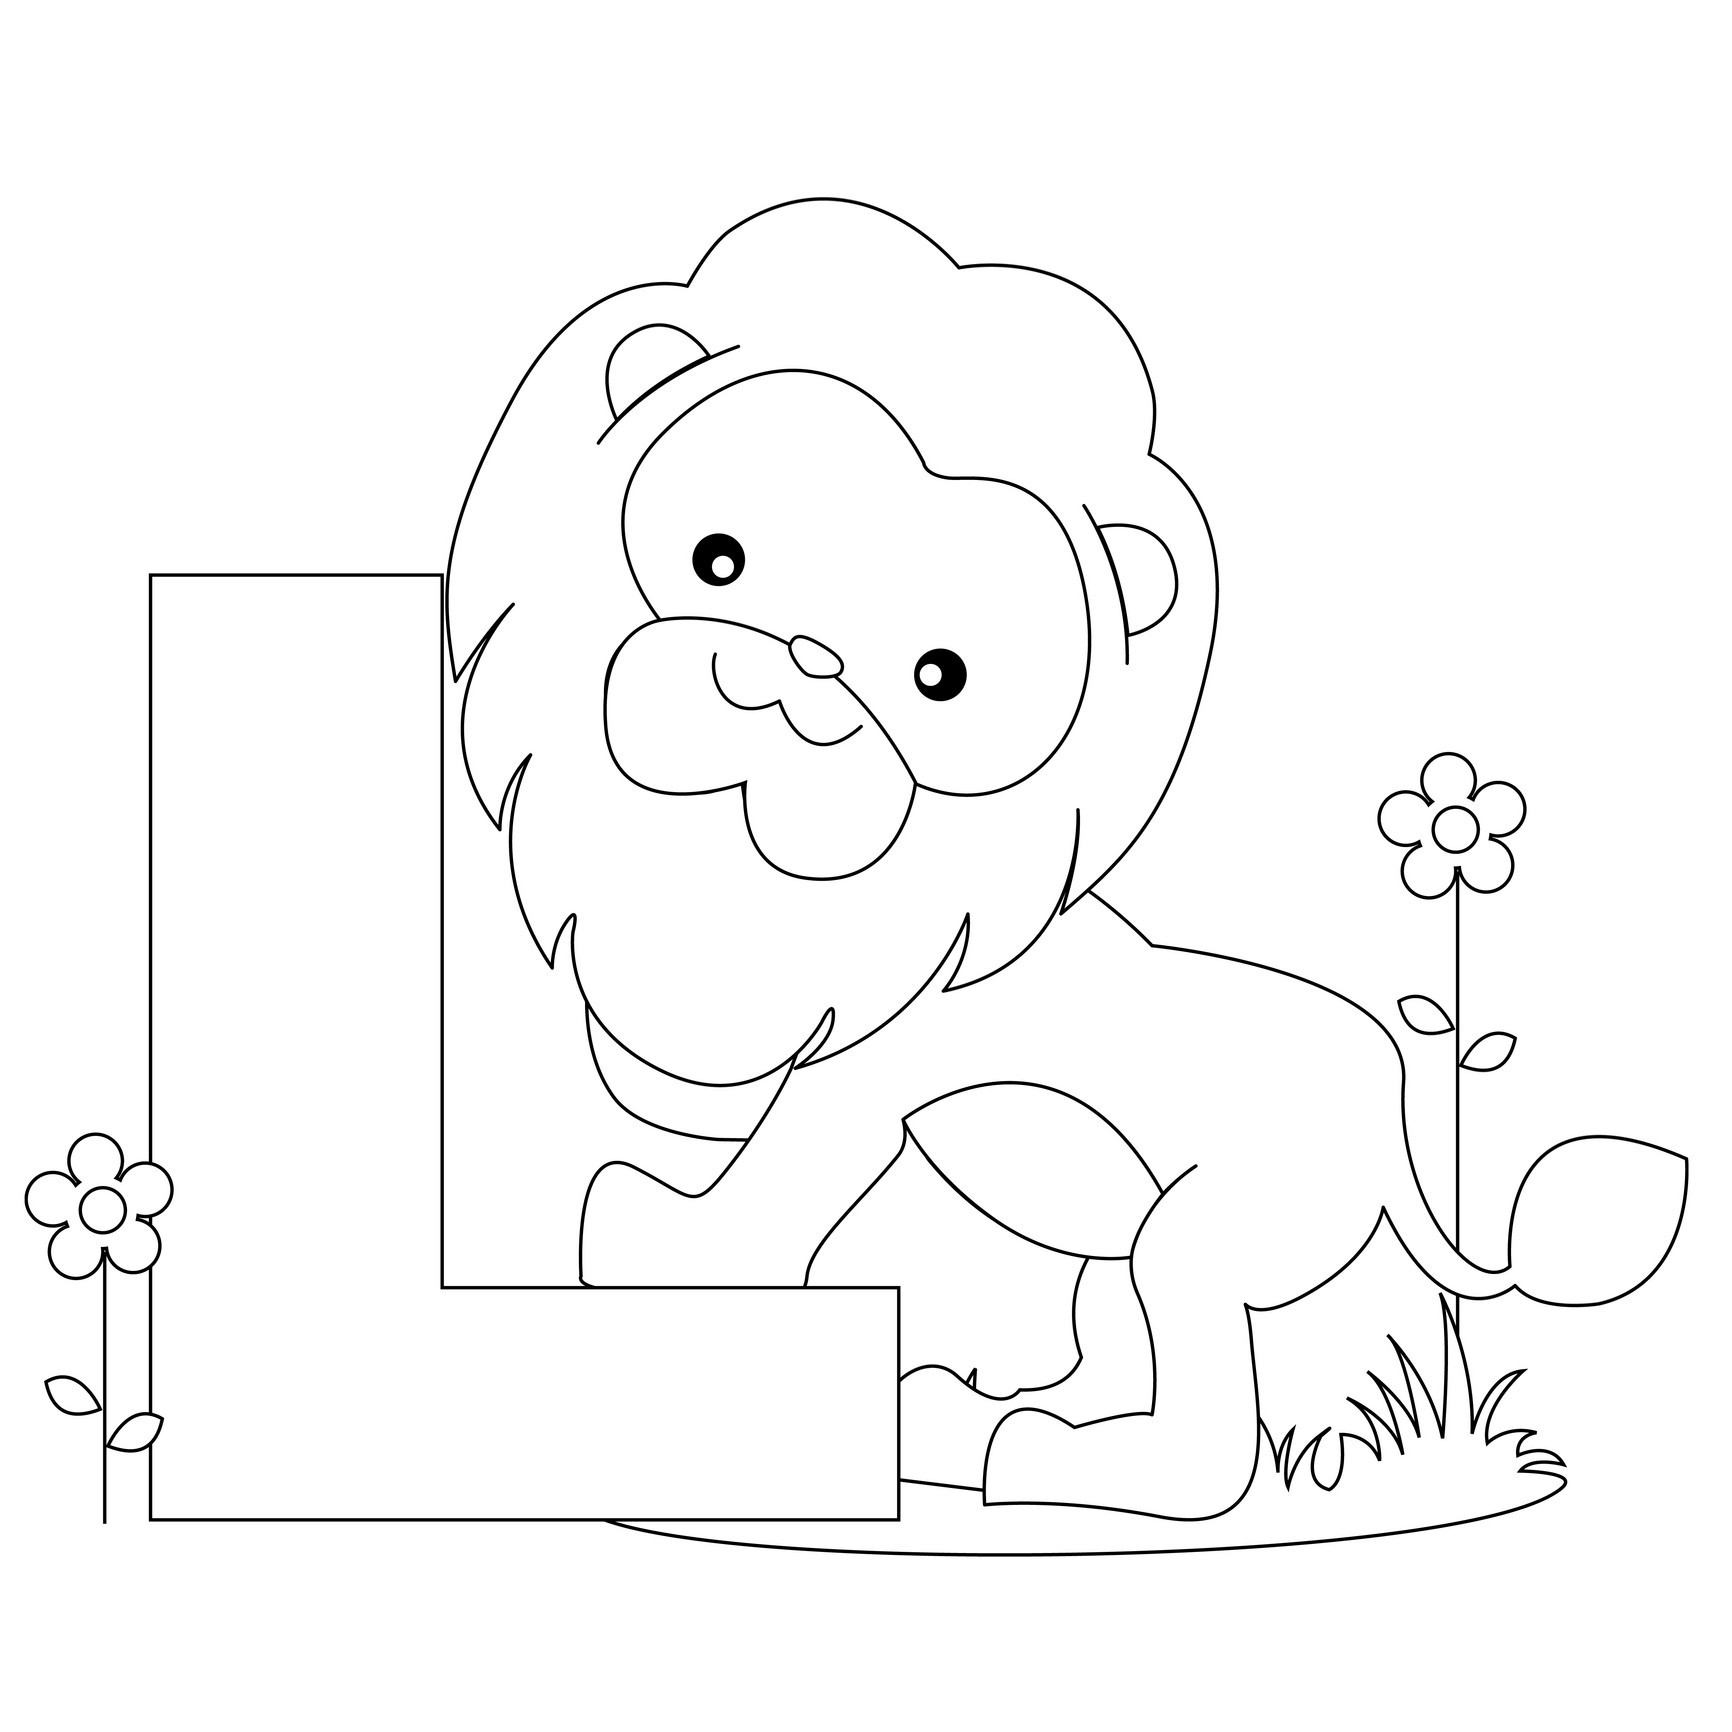 toddler abc coloring pages free printable alphabet coloring pages for kids best coloring pages abc toddler